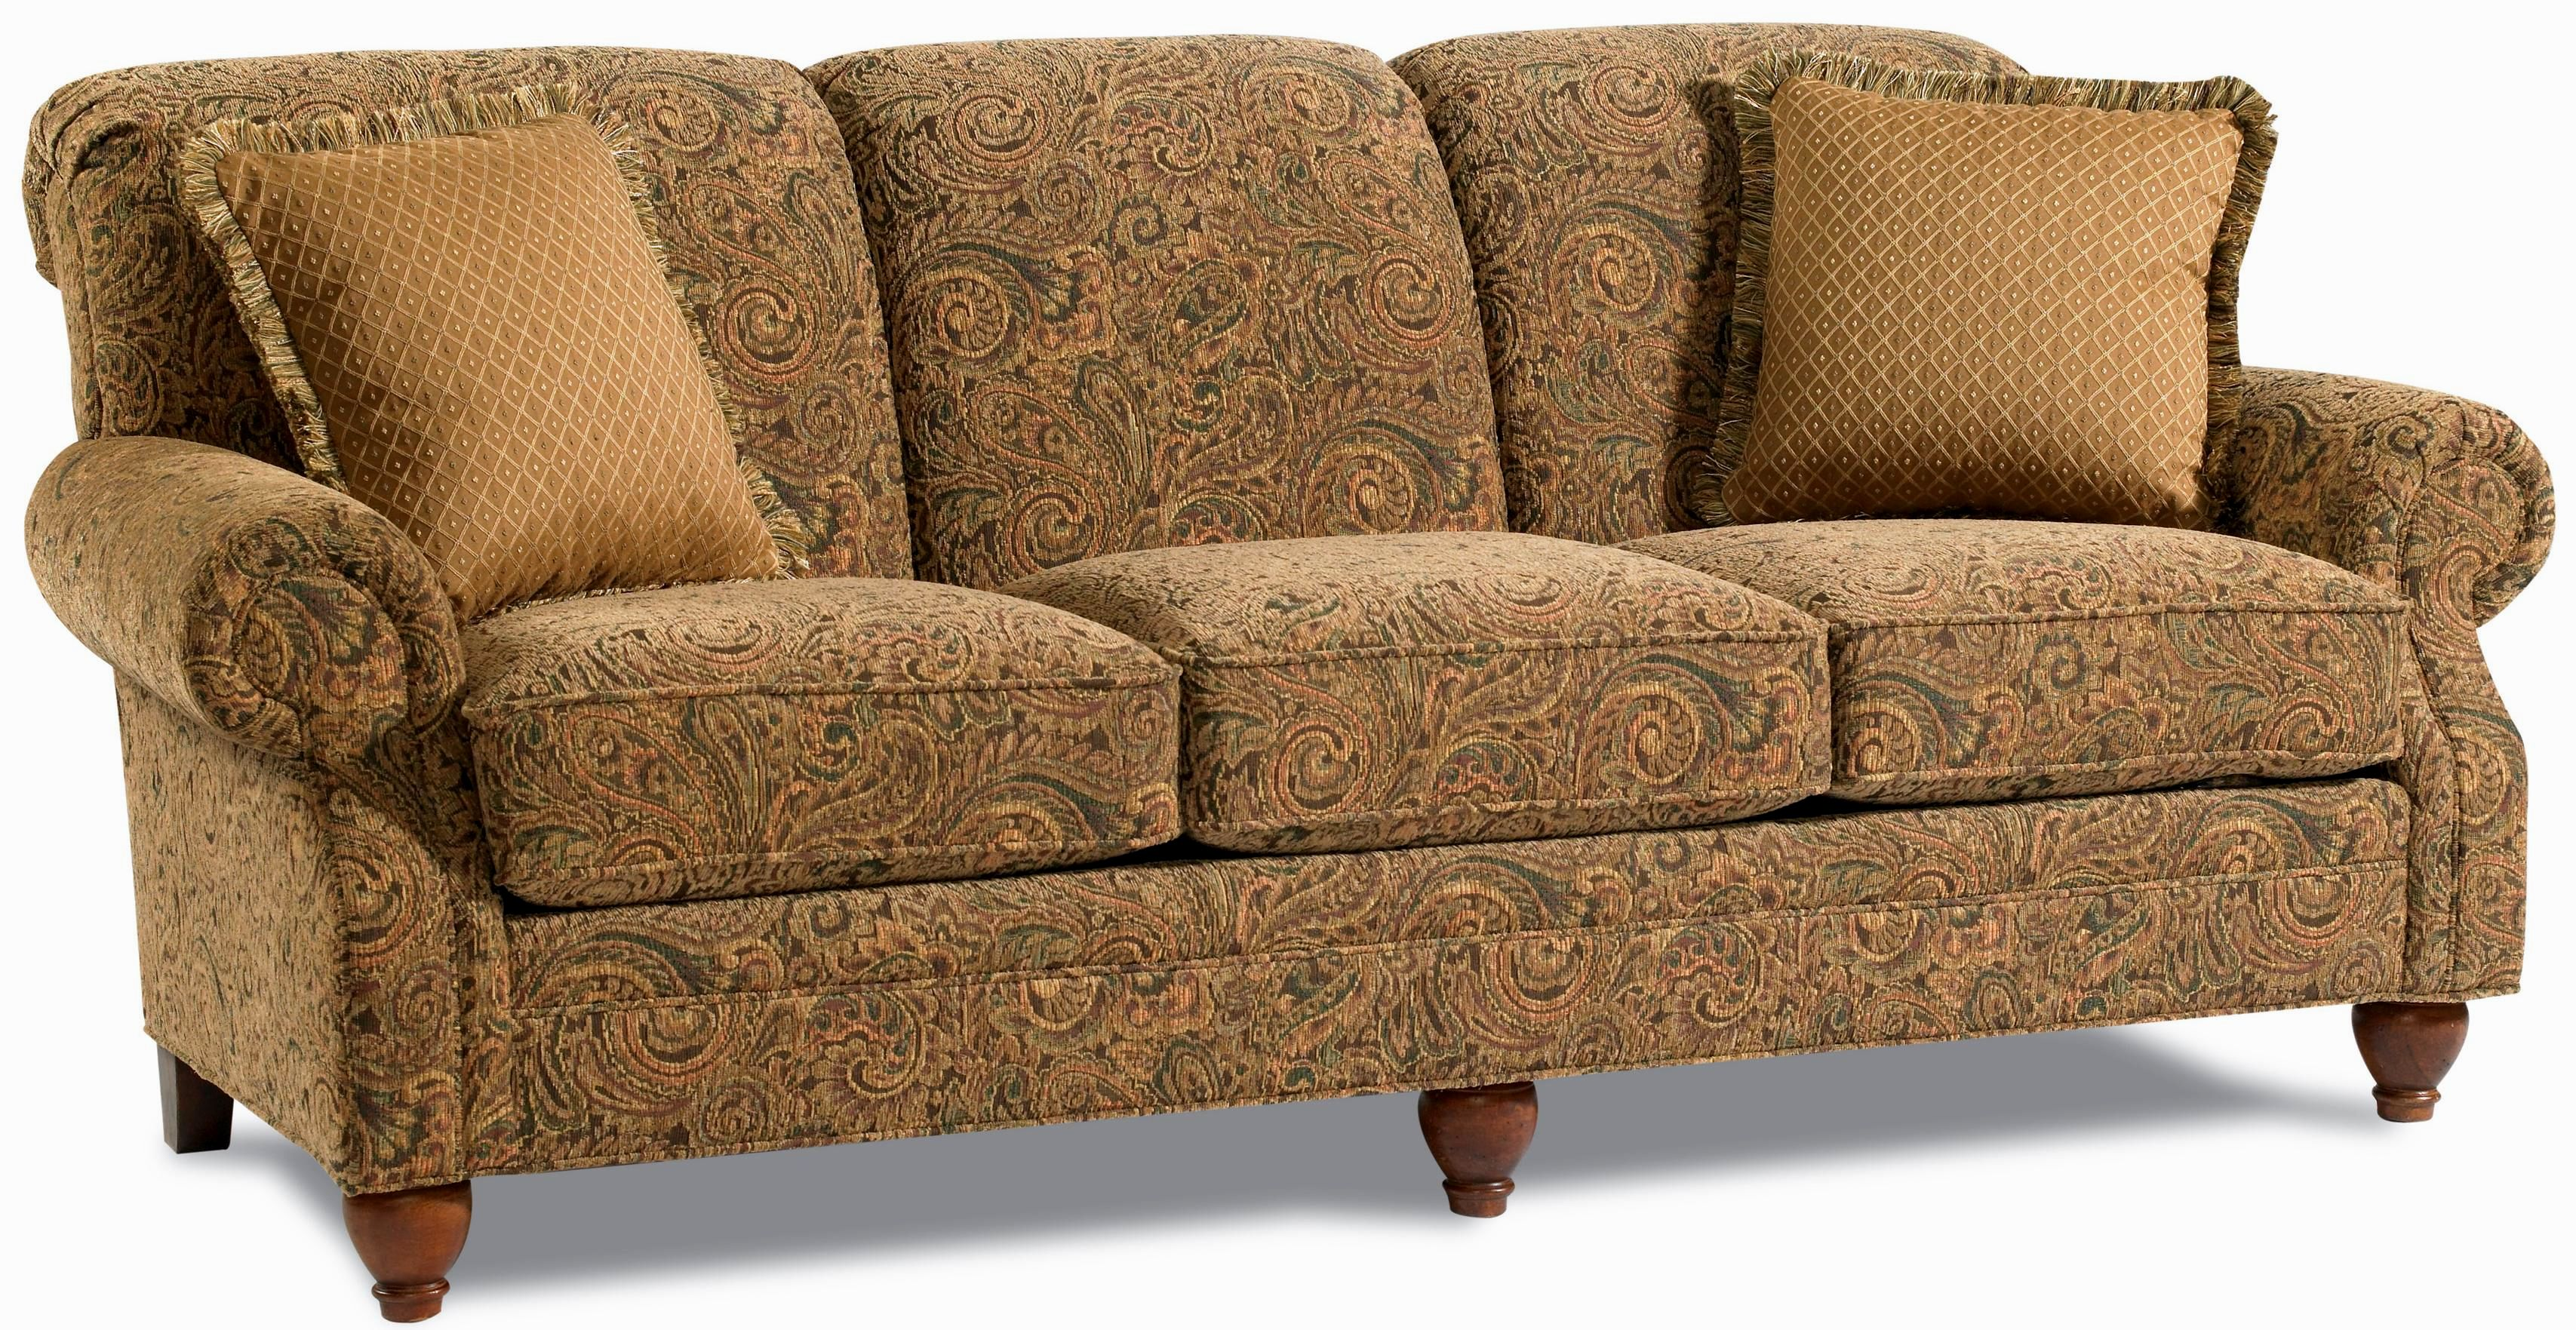 cute clayton marcus sofa decoration-Finest Clayton Marcus sofa Layout